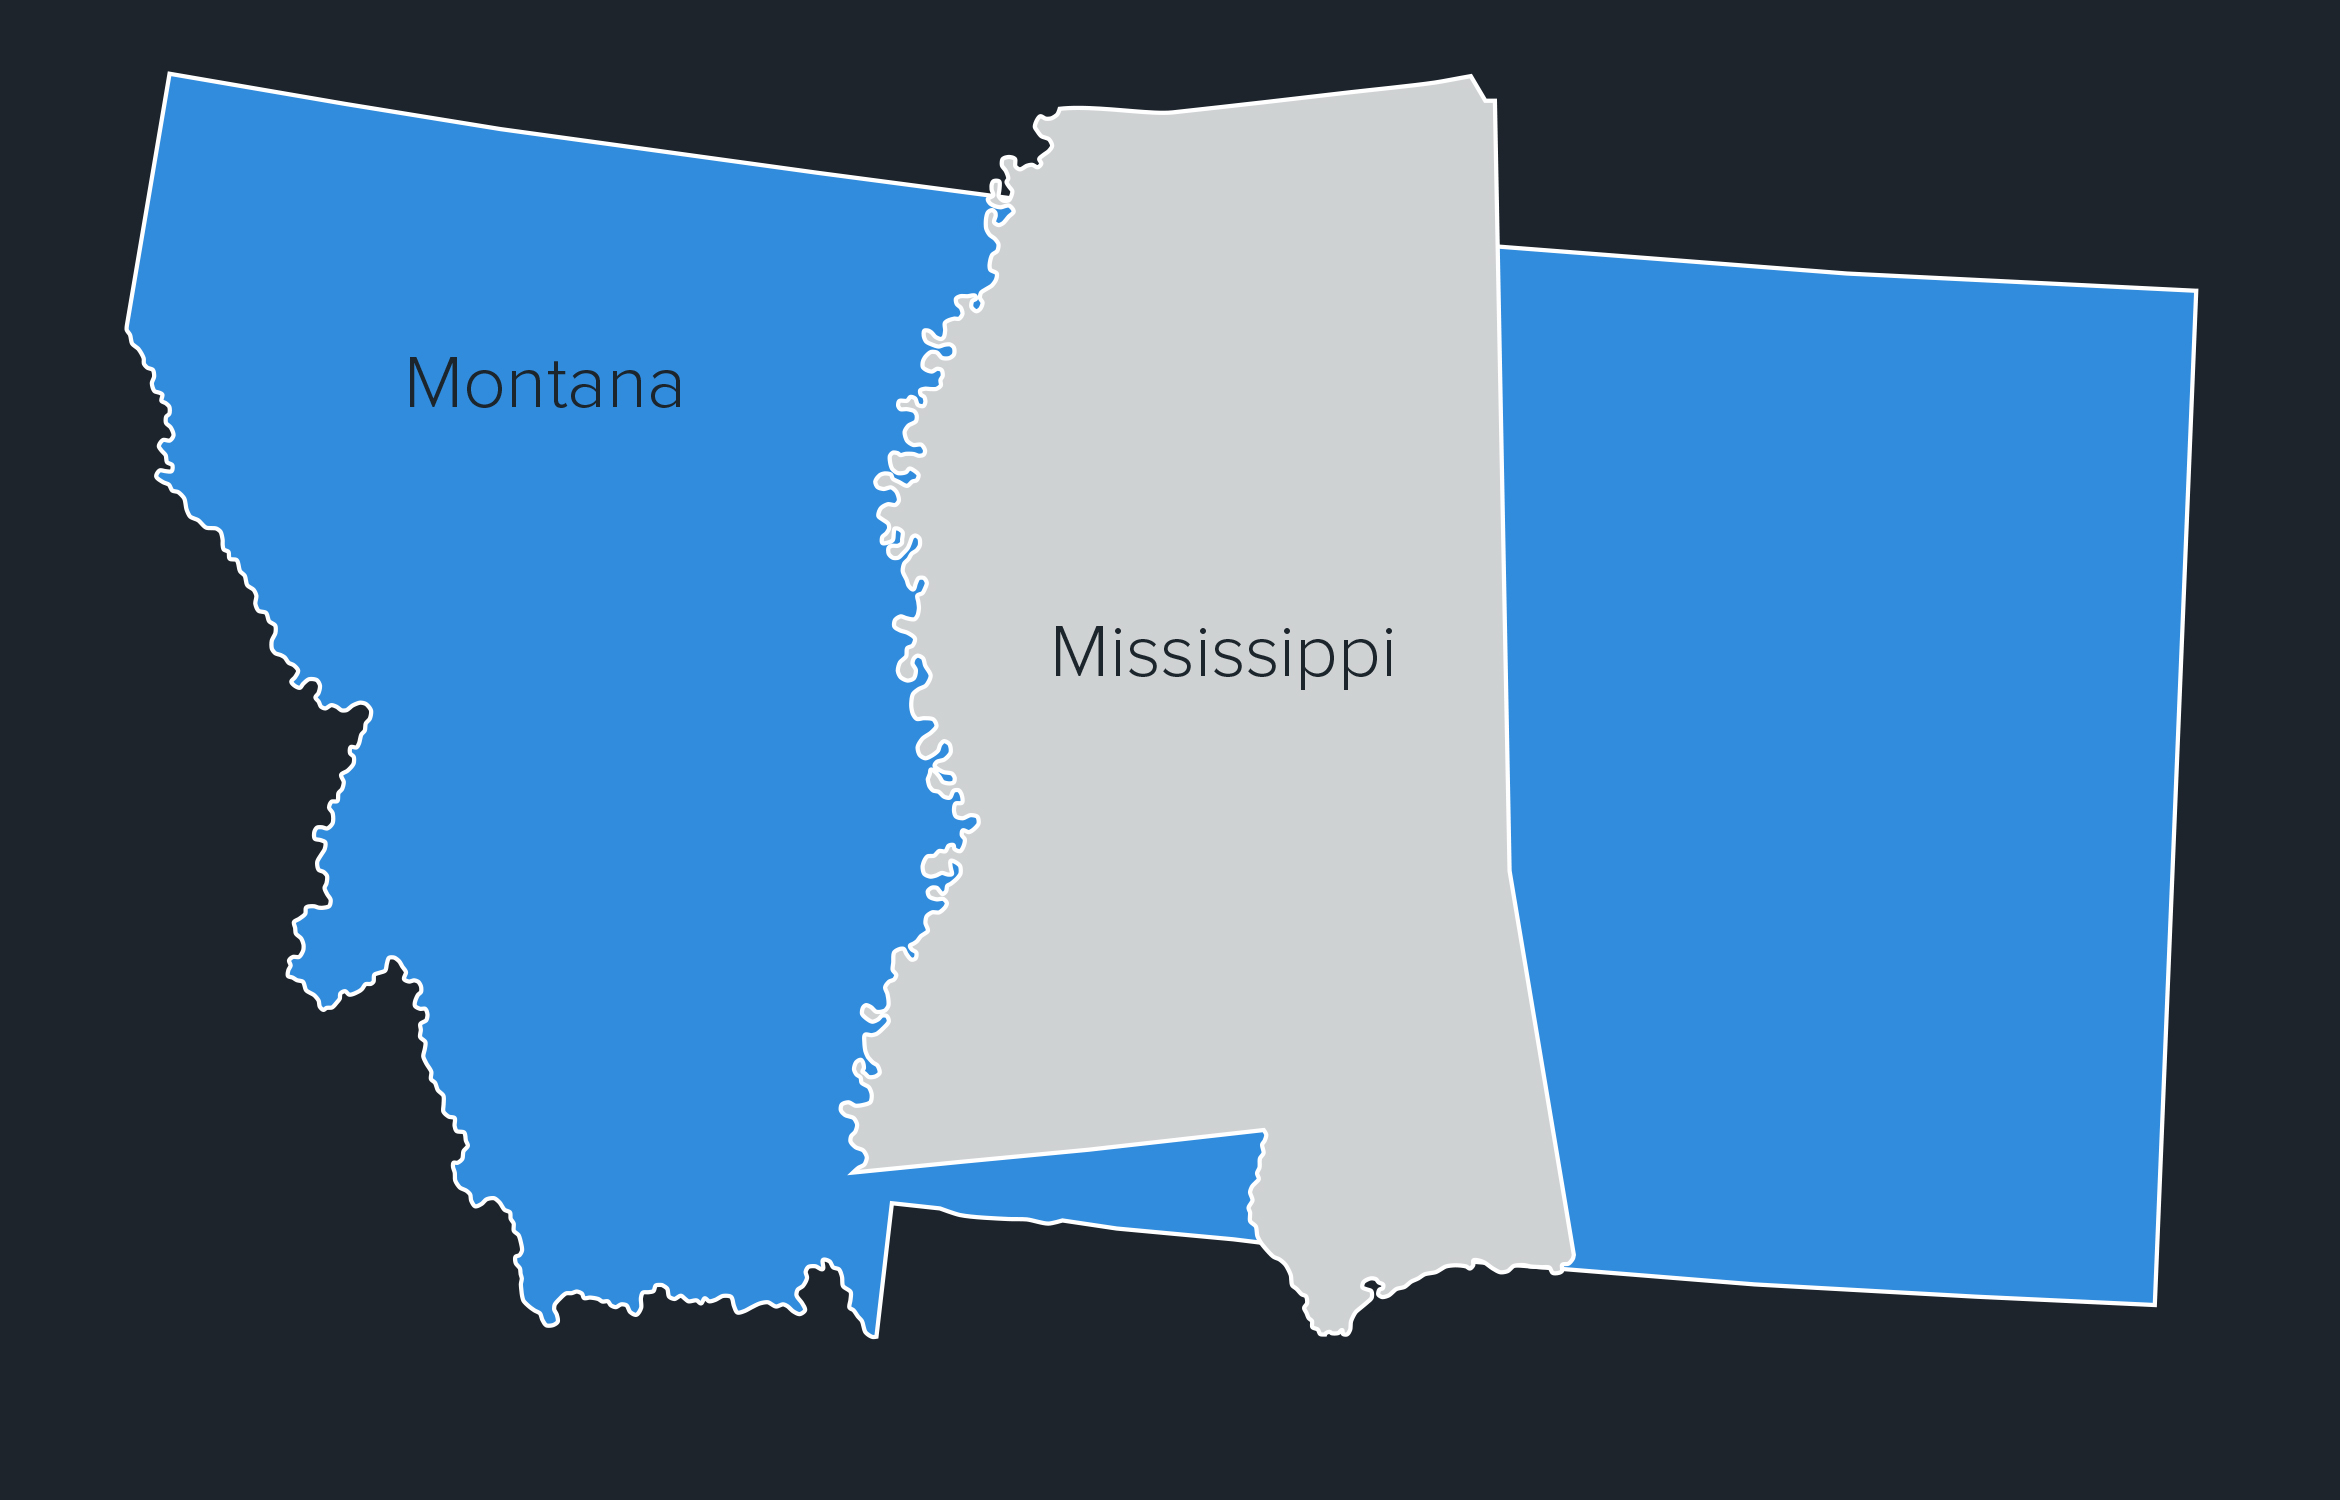 Montana Mississippi state outlines